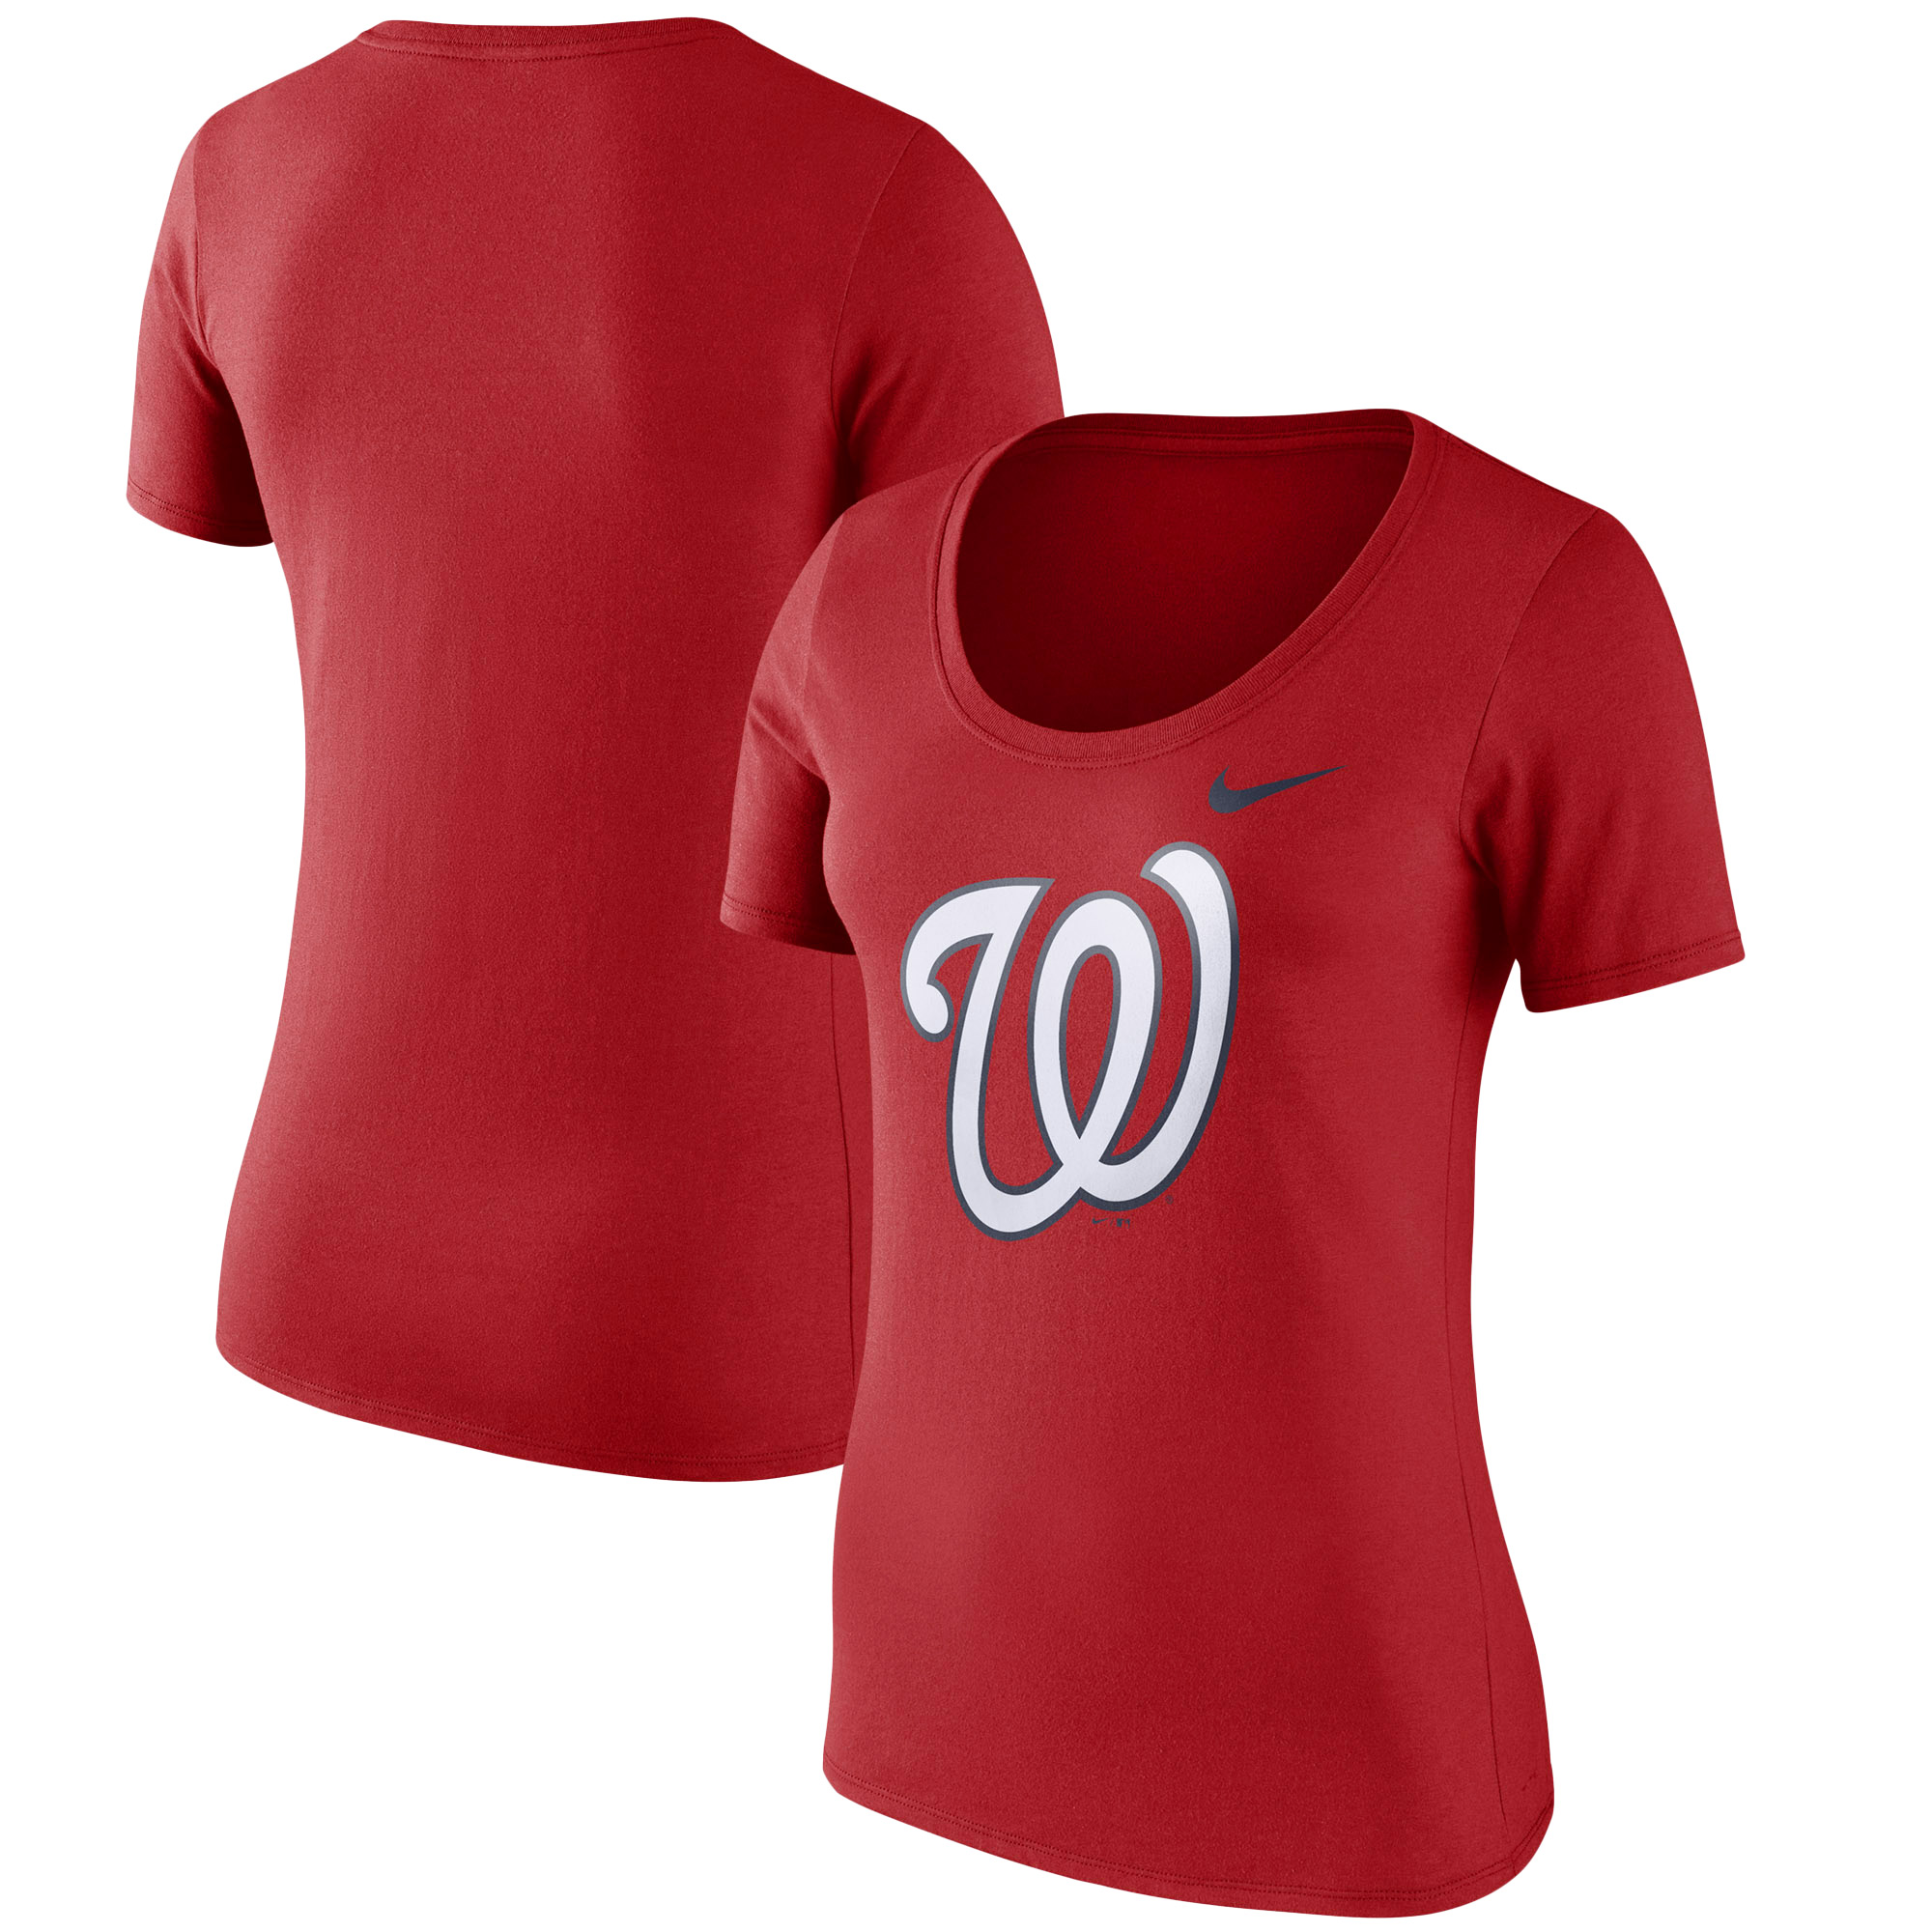 Women's Nike Red Washington Nationals Logo Scoop Neck T-Shirt